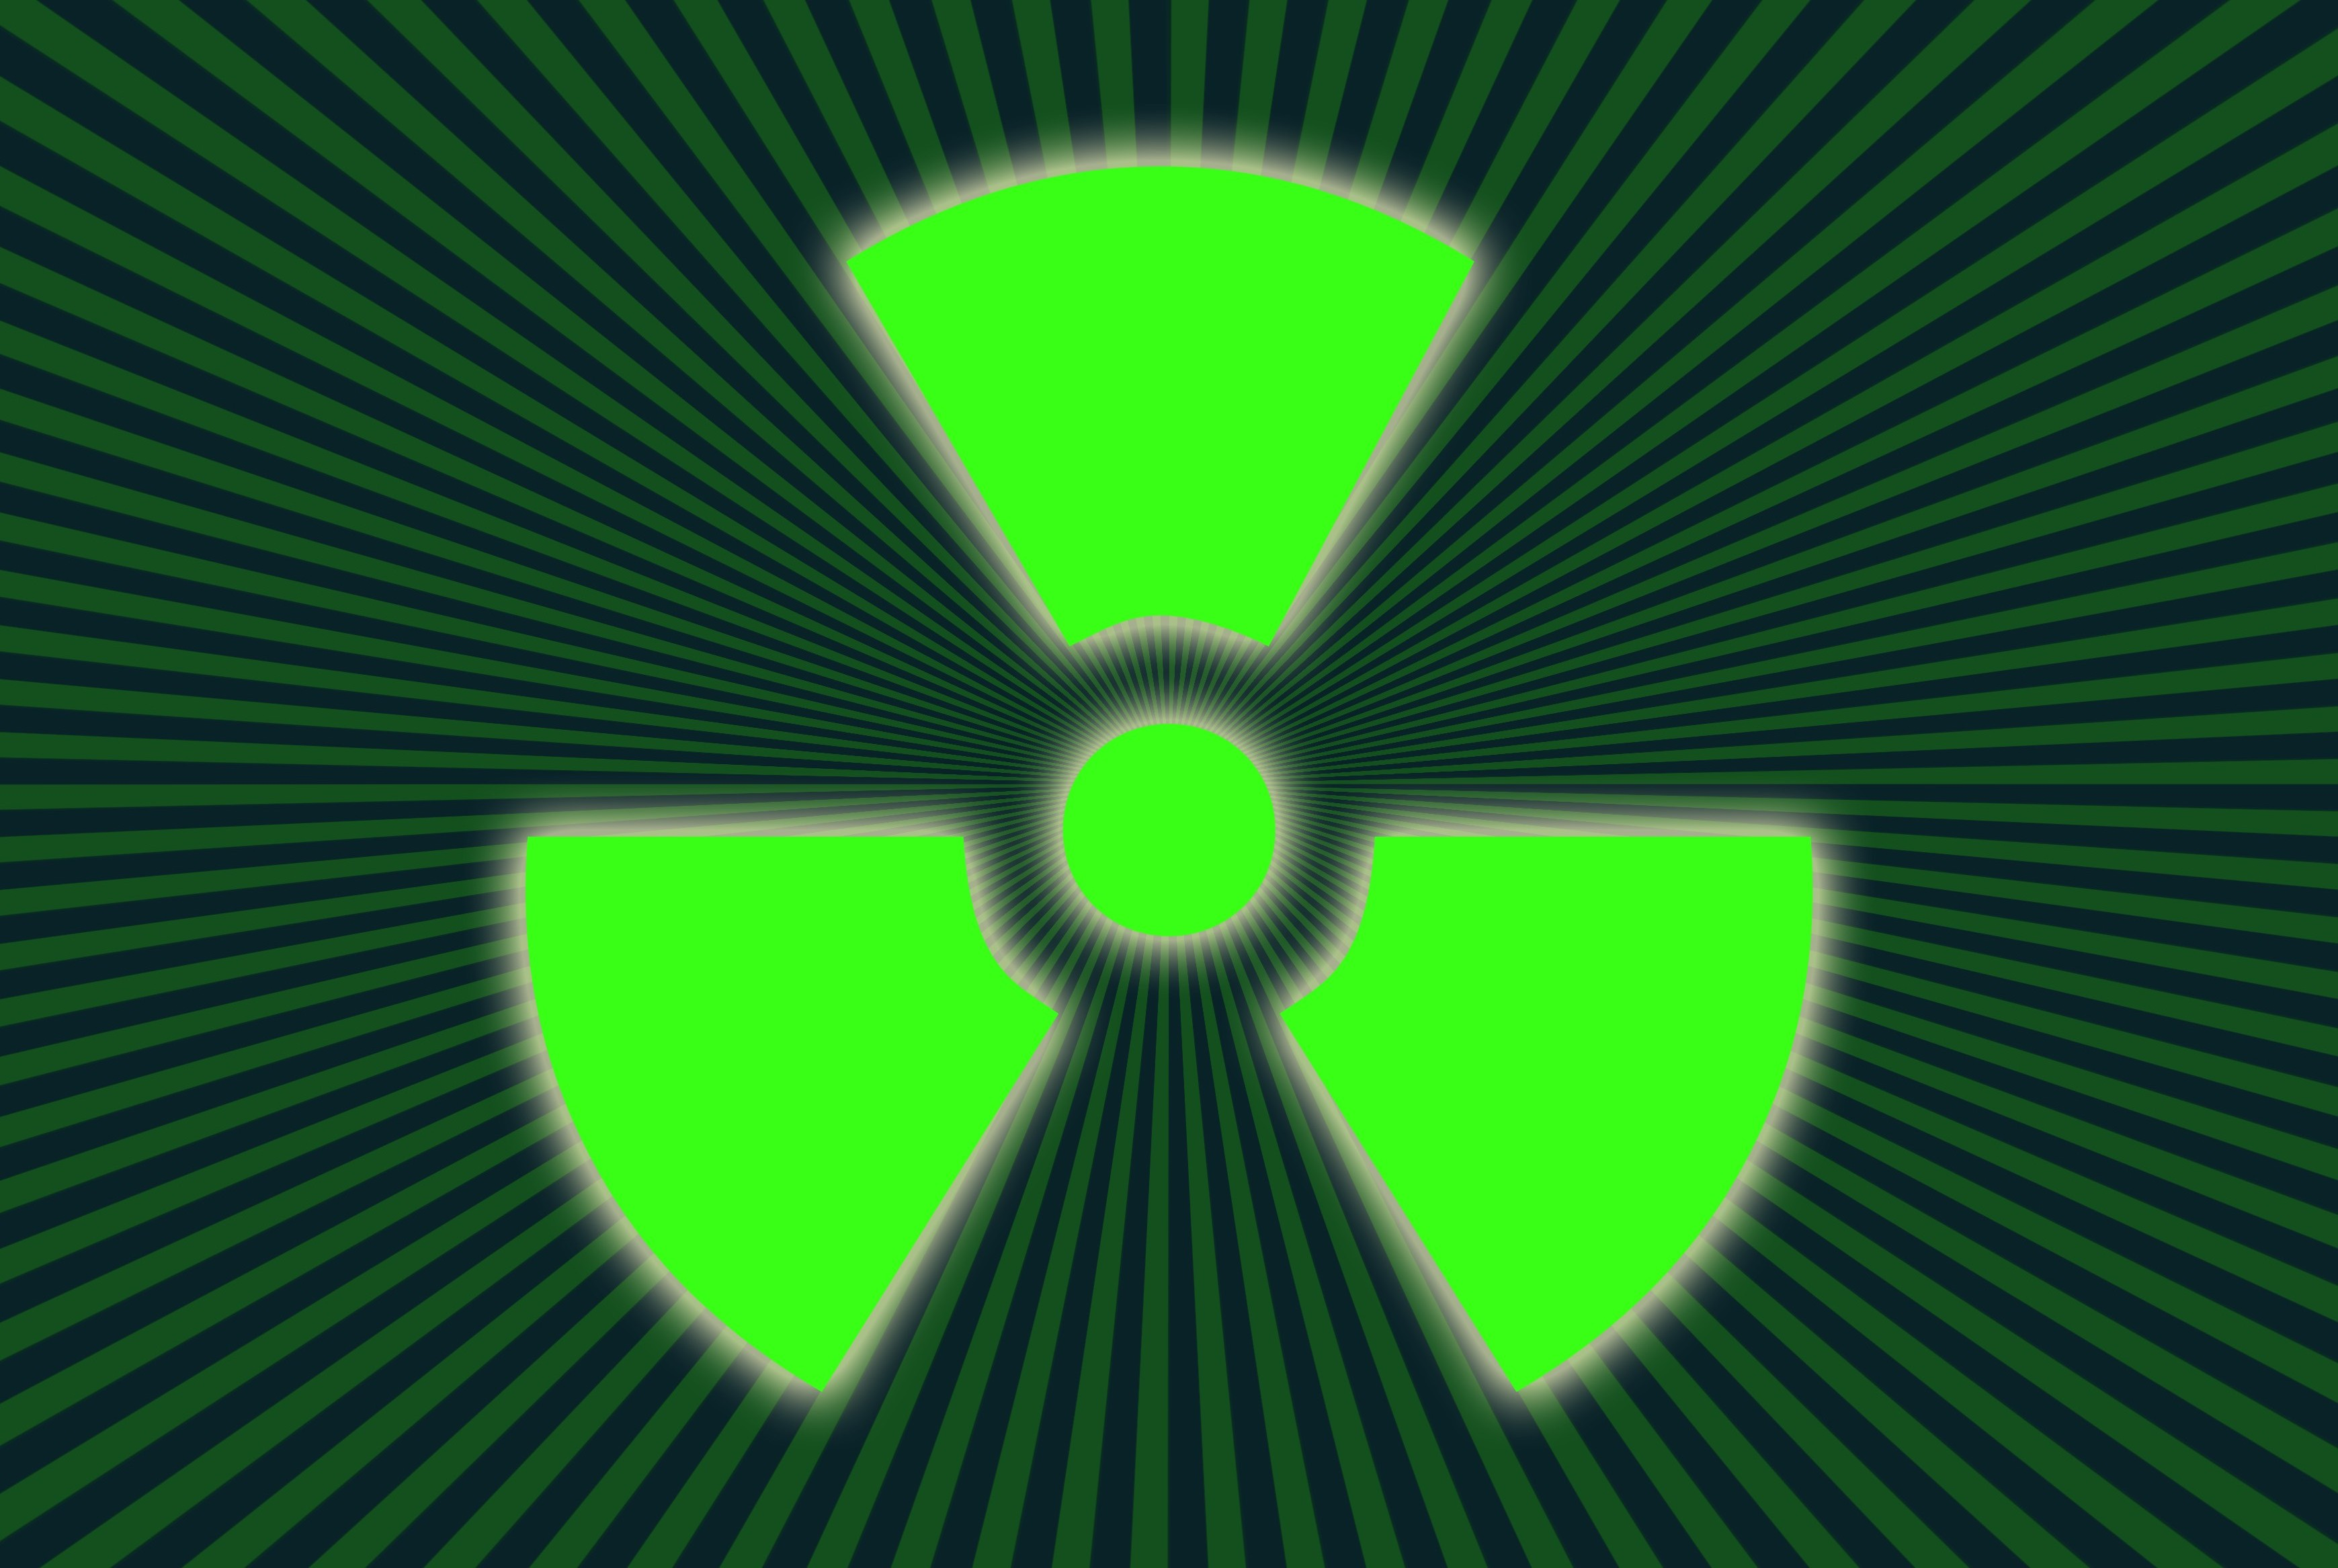 Glowing Radiation Icon Free Backgrounds And Textures Cr103